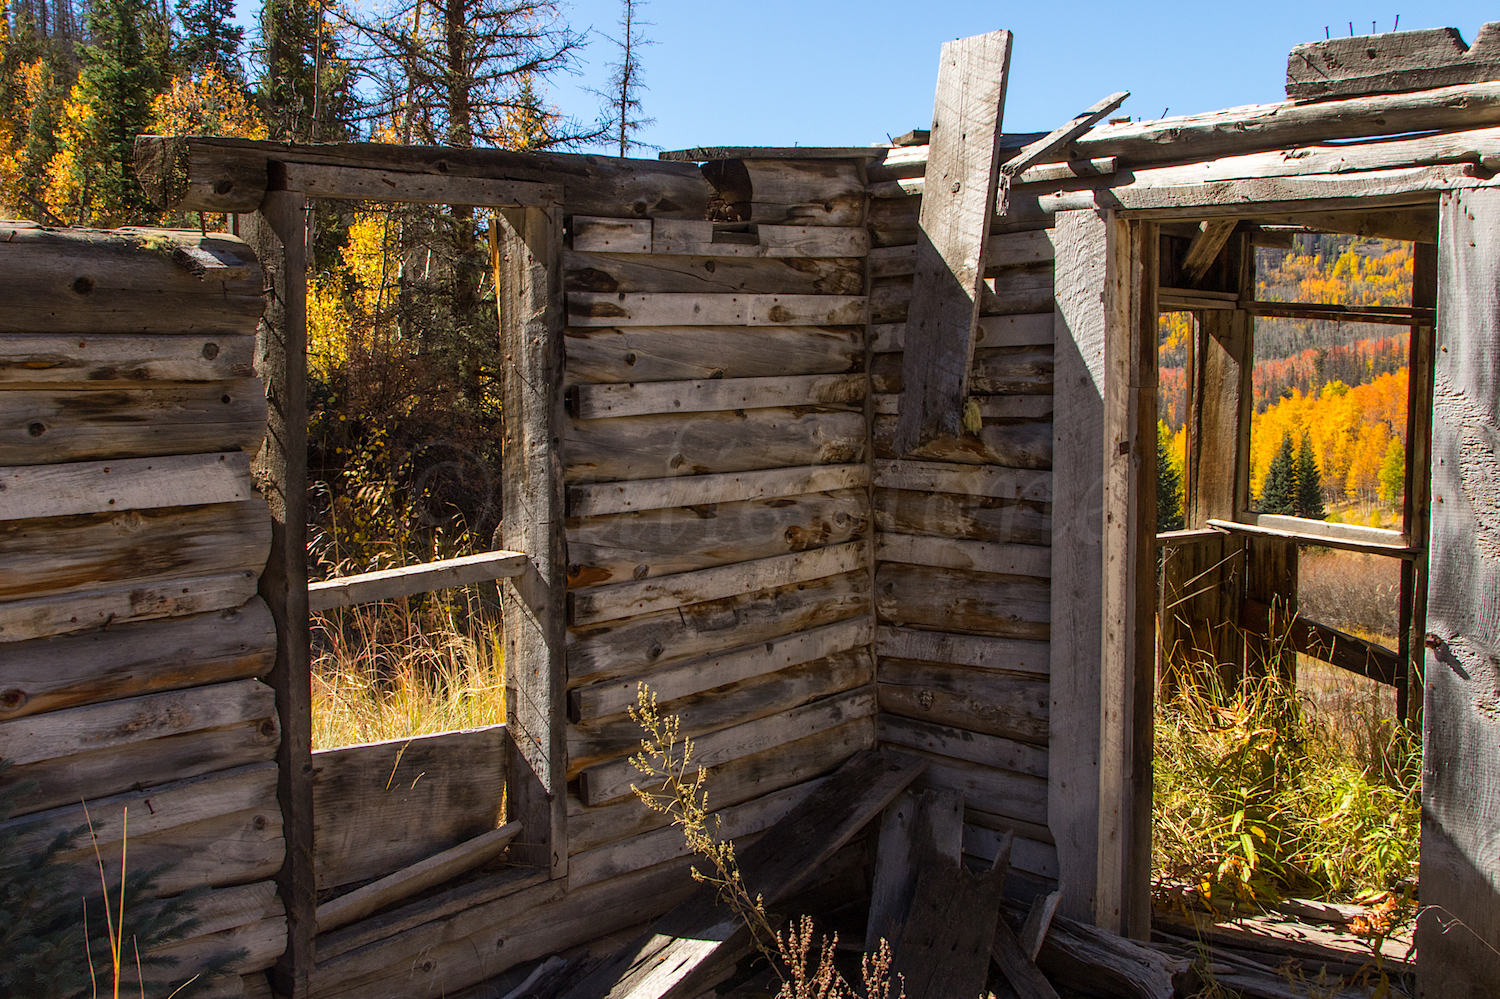 Cabin near Midwest Mine, Image # 3592